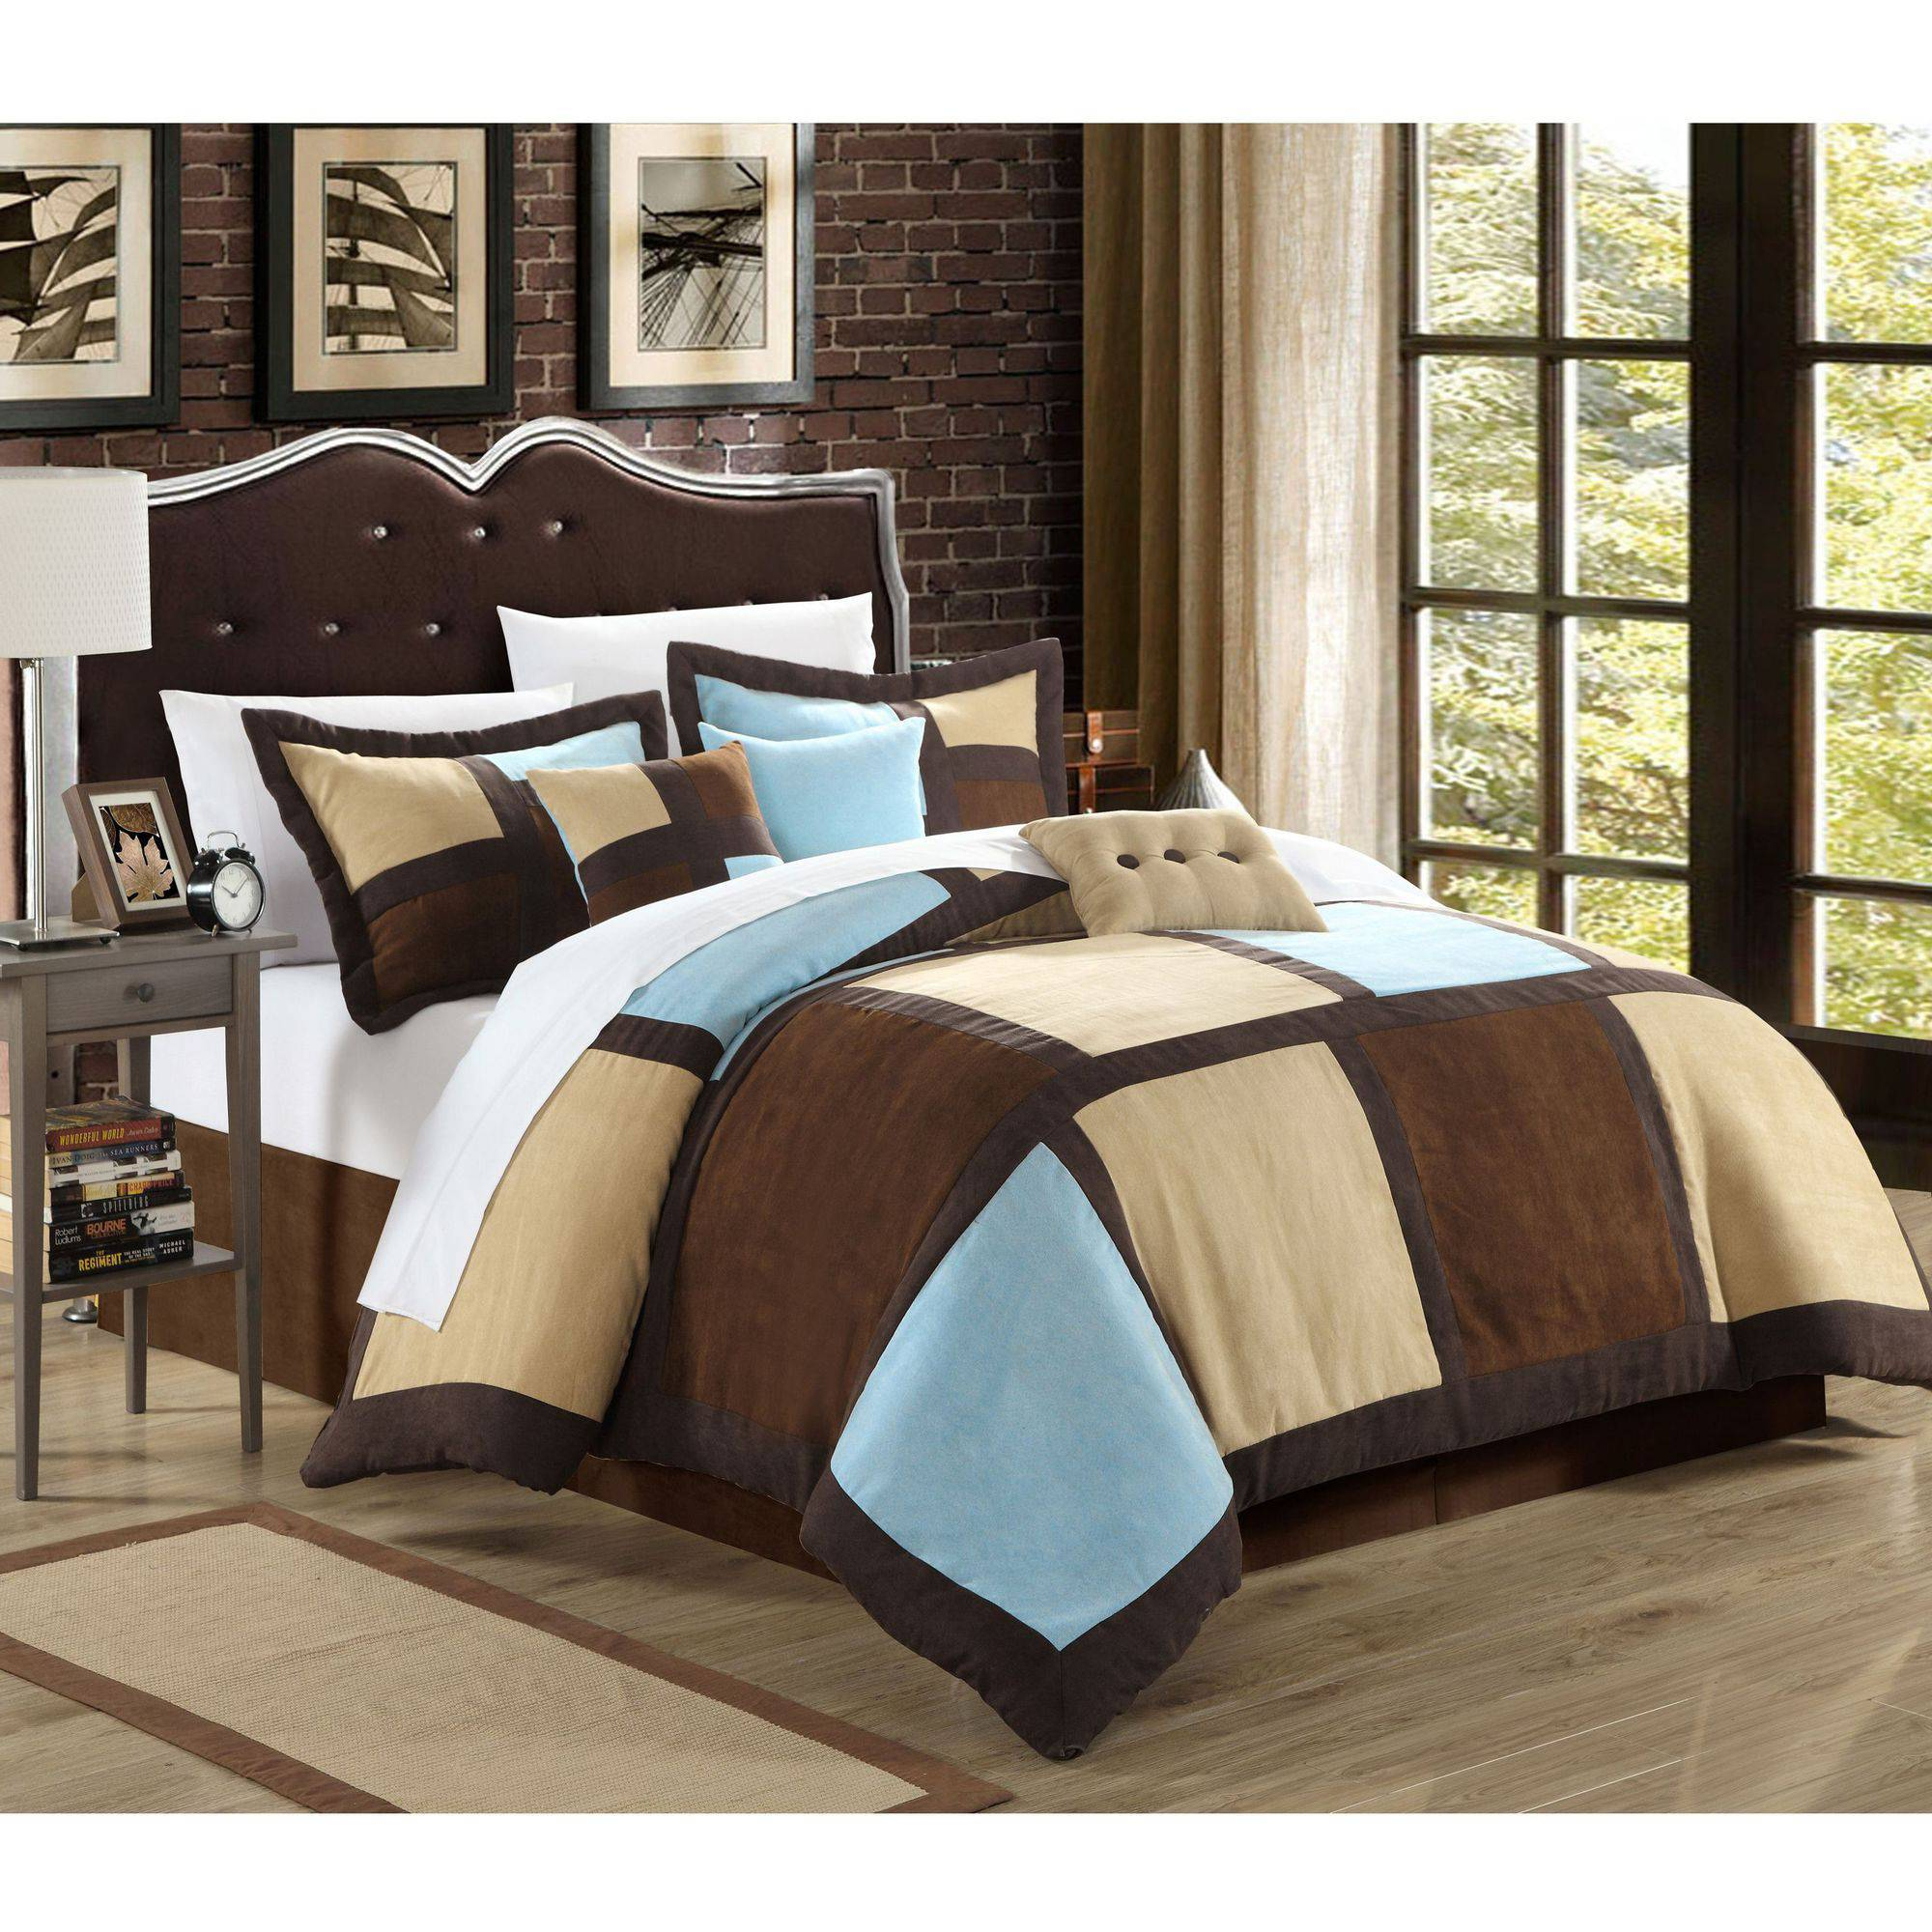 Chic Home Diana 11-Piece Microsuede Patchwork Comforter Set